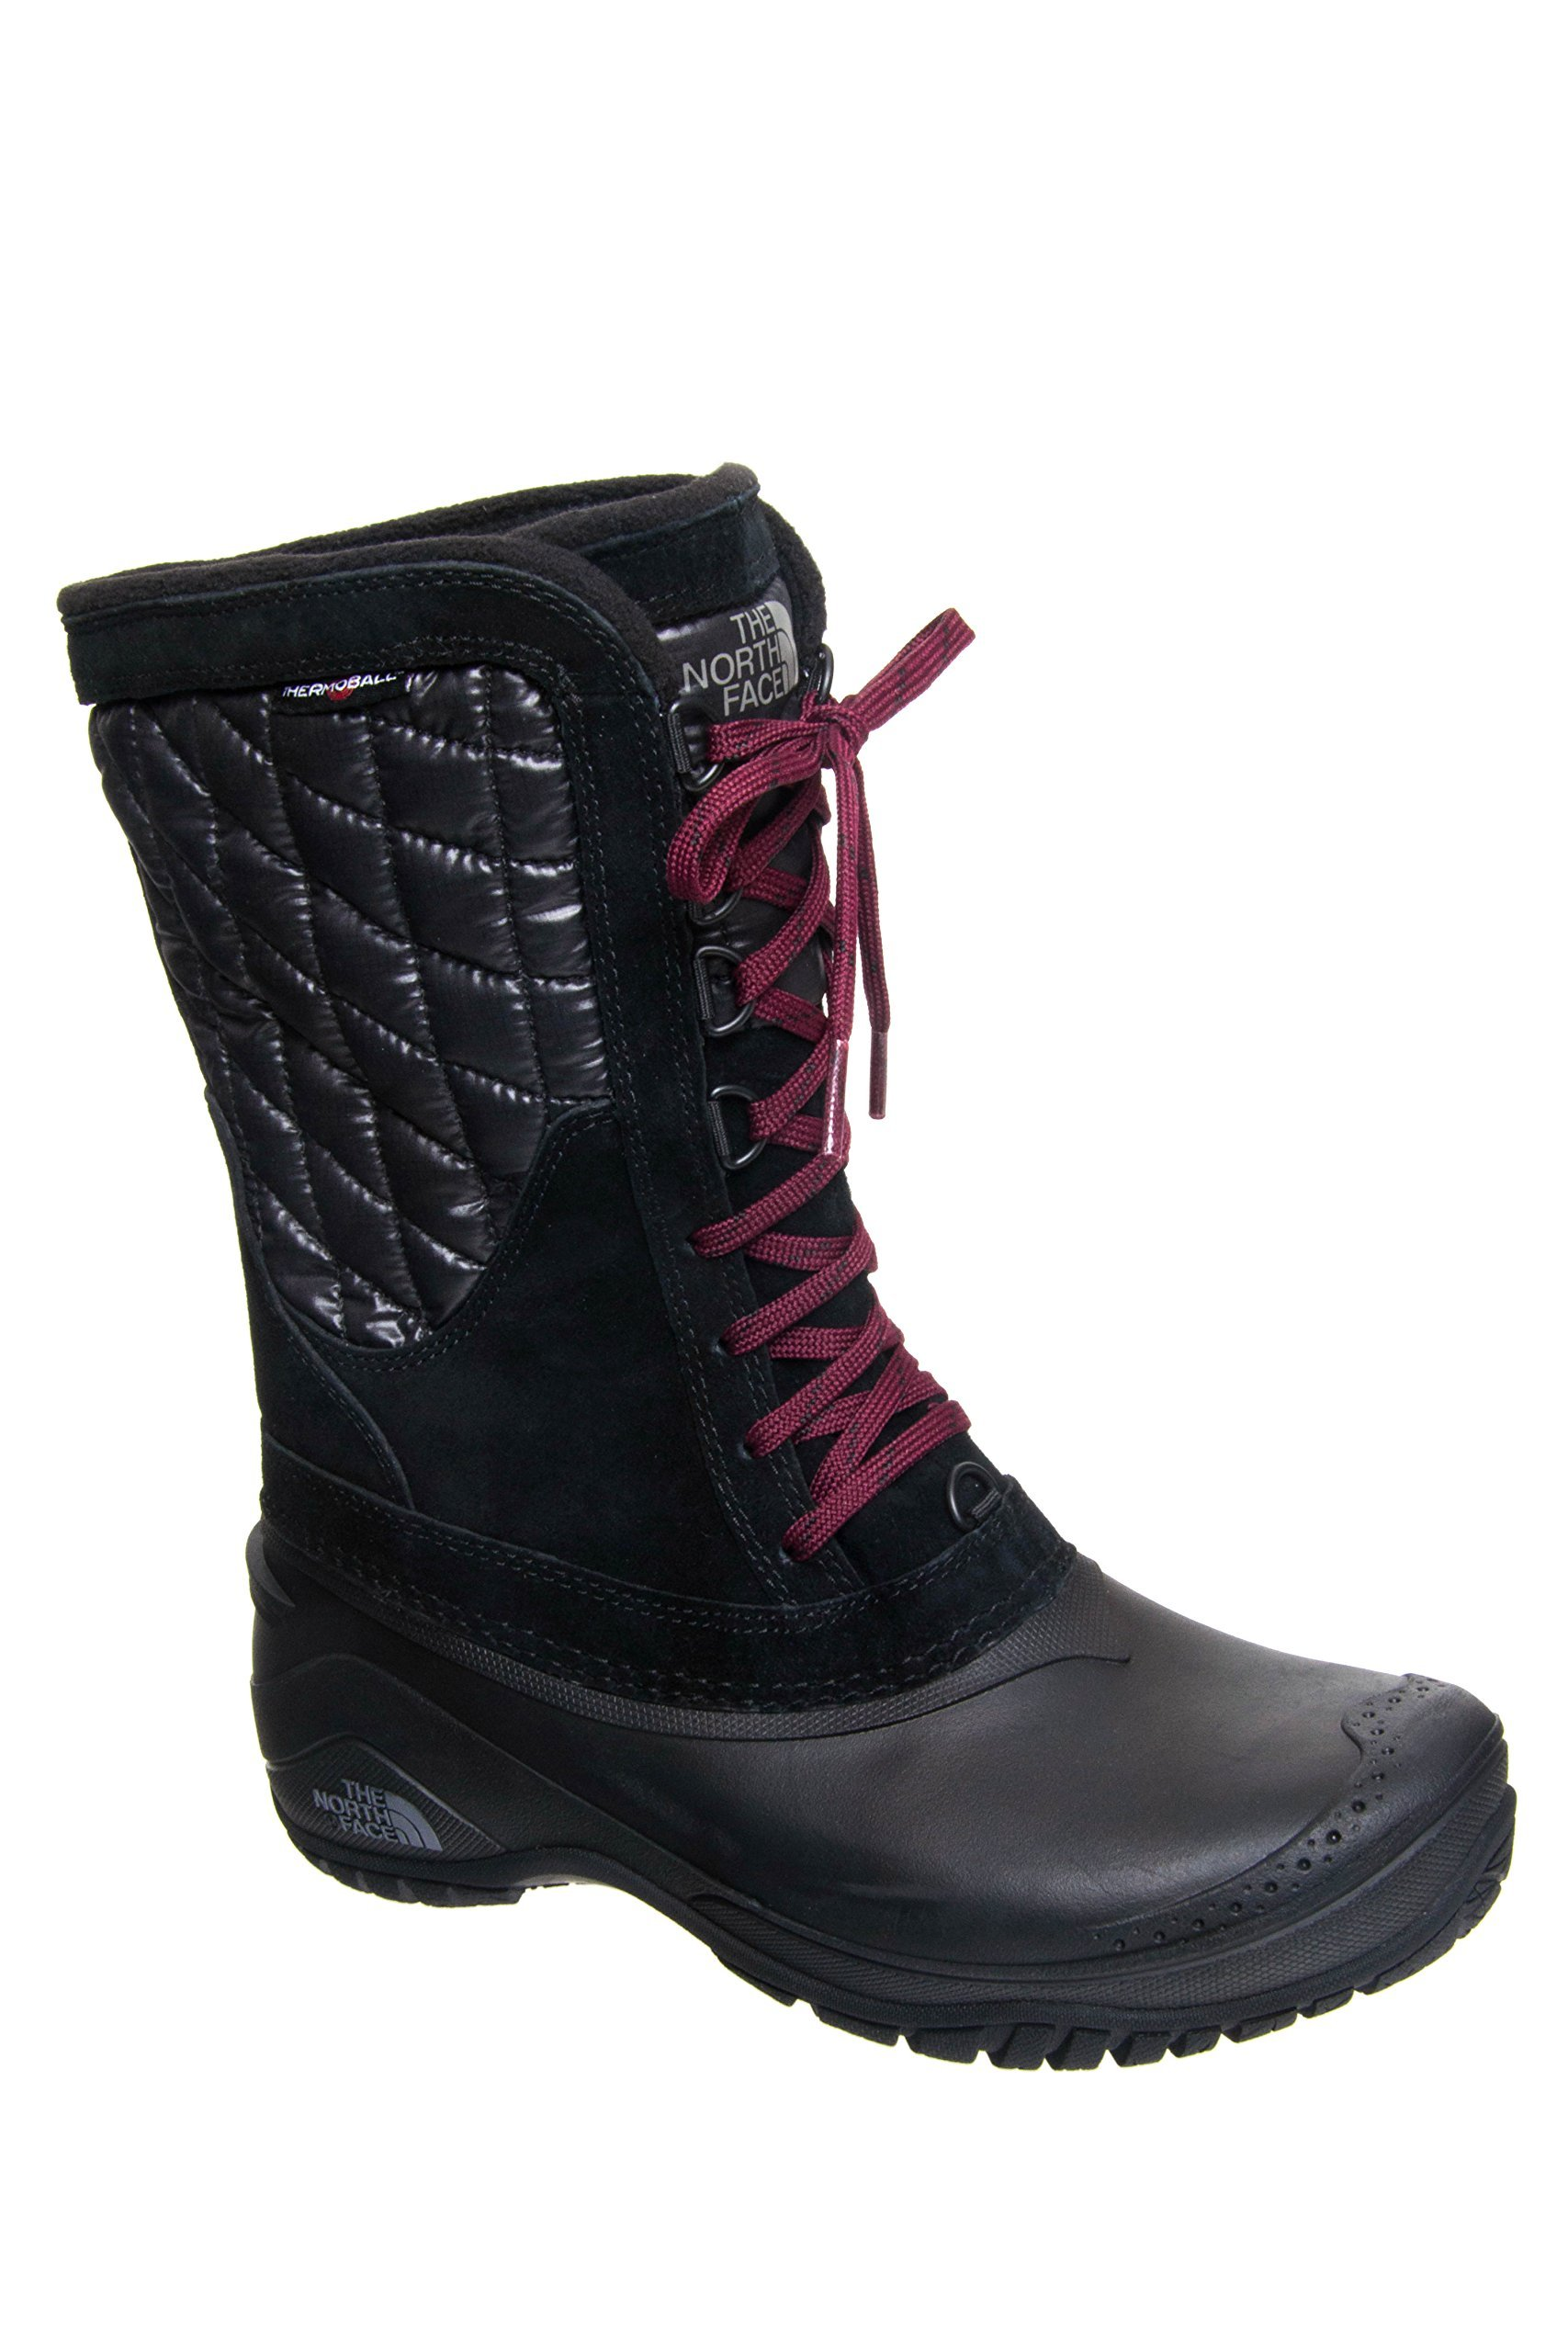 The North Face Women's Thermoball Utility Mid Boot - TNF Black/Deep Garnet Red - 9 by The North Face (Image #1)